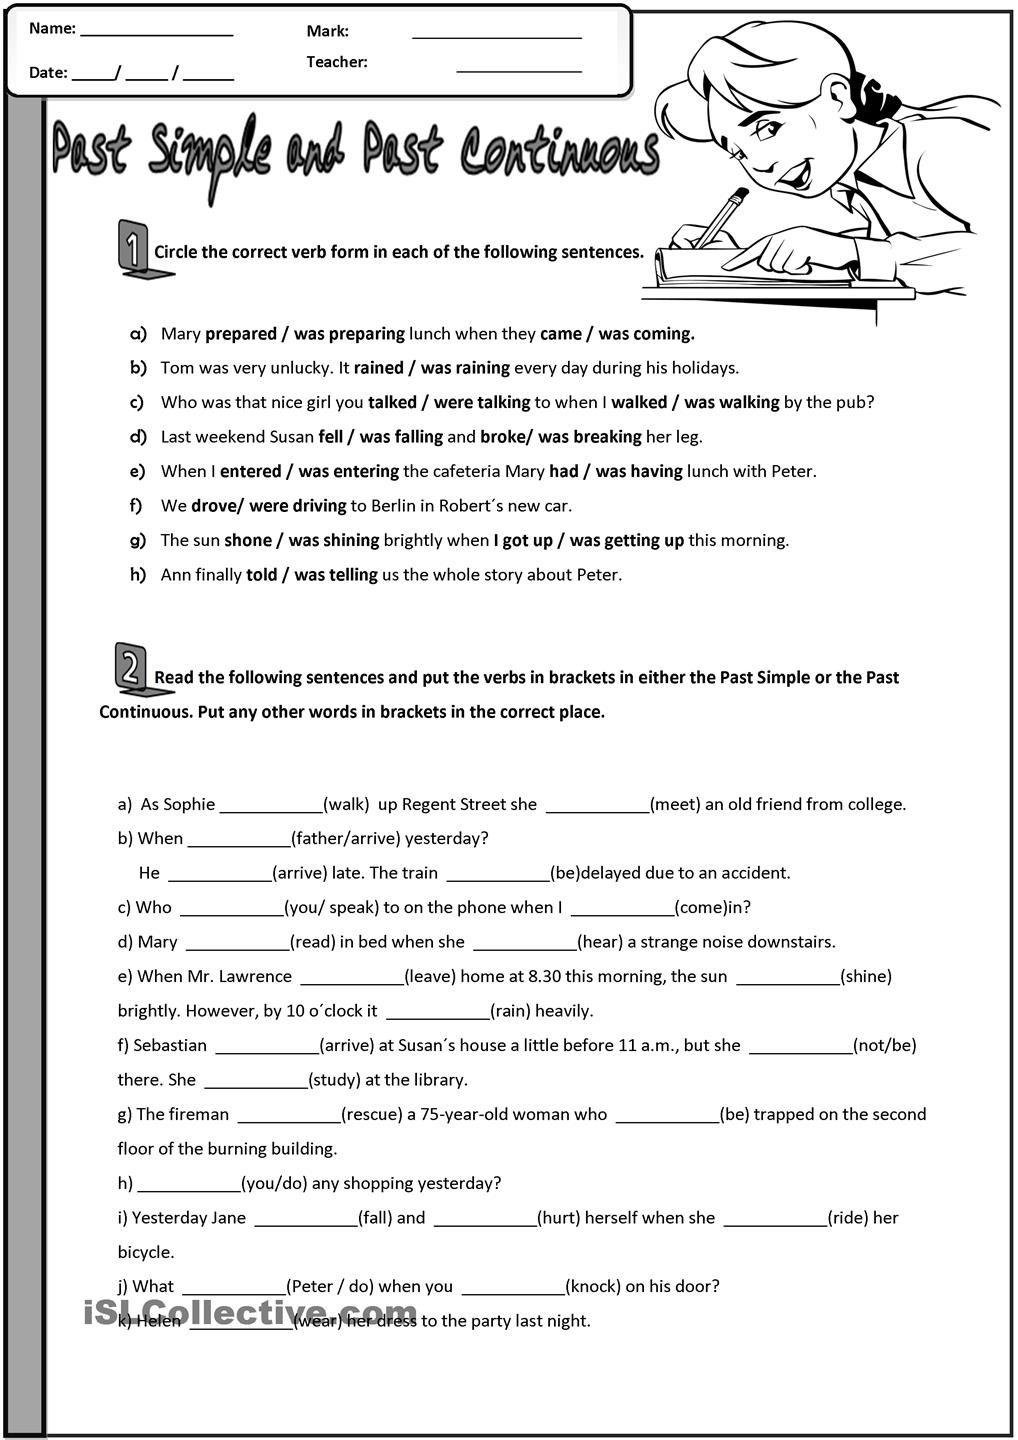 worksheet High School English Worksheets jobs and occupations list esl worksheets of the day pinterest a collection efl downloadable printable practice exercises activities to teach about high school for high